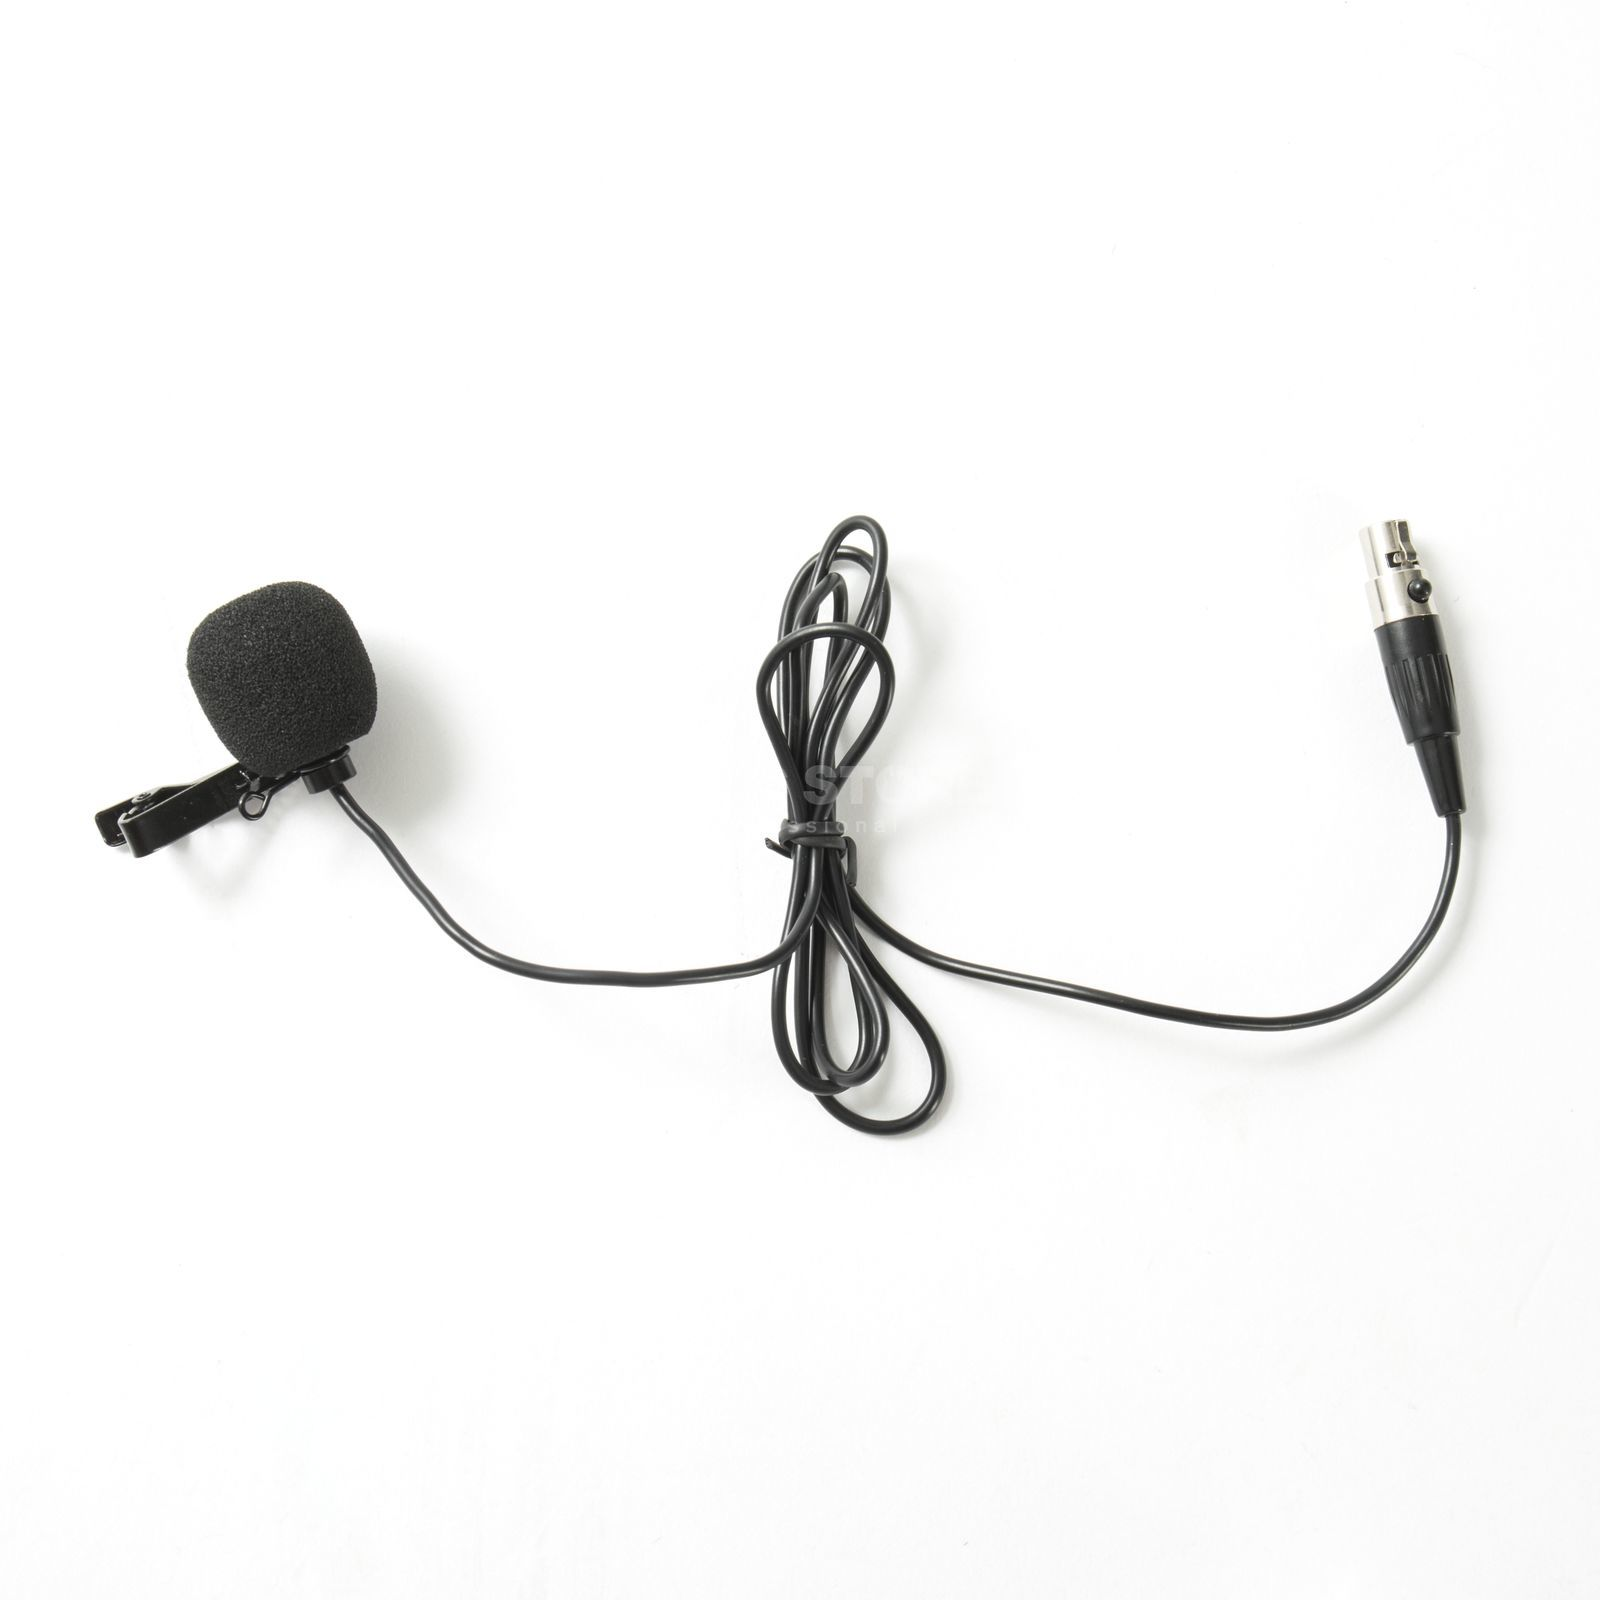 Fame Audio MSW Pro LAV Lapel Microphone with mini XLR Produktbillede